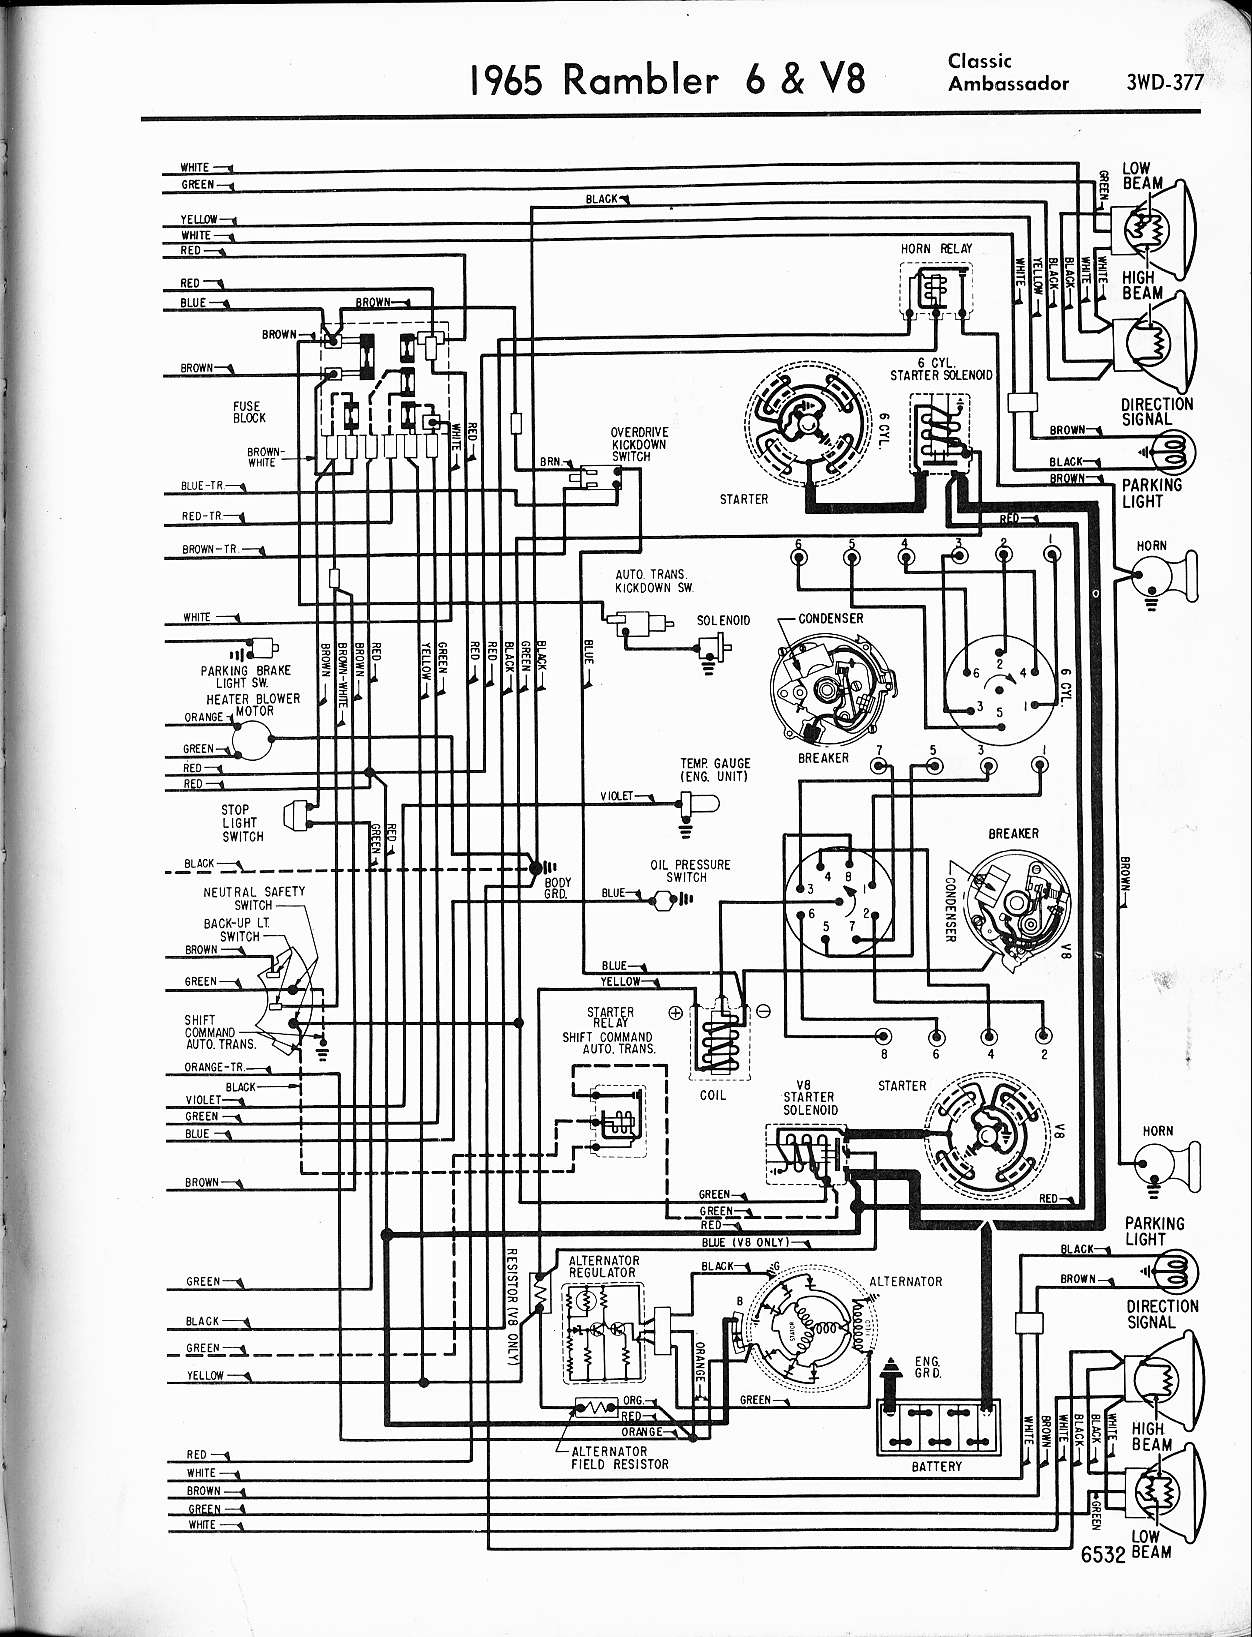 rambler wiring diagrams the old car manual project rh oldcarmanualproject  com 1964 Rambler Marlin 1964 Rambler Marlin